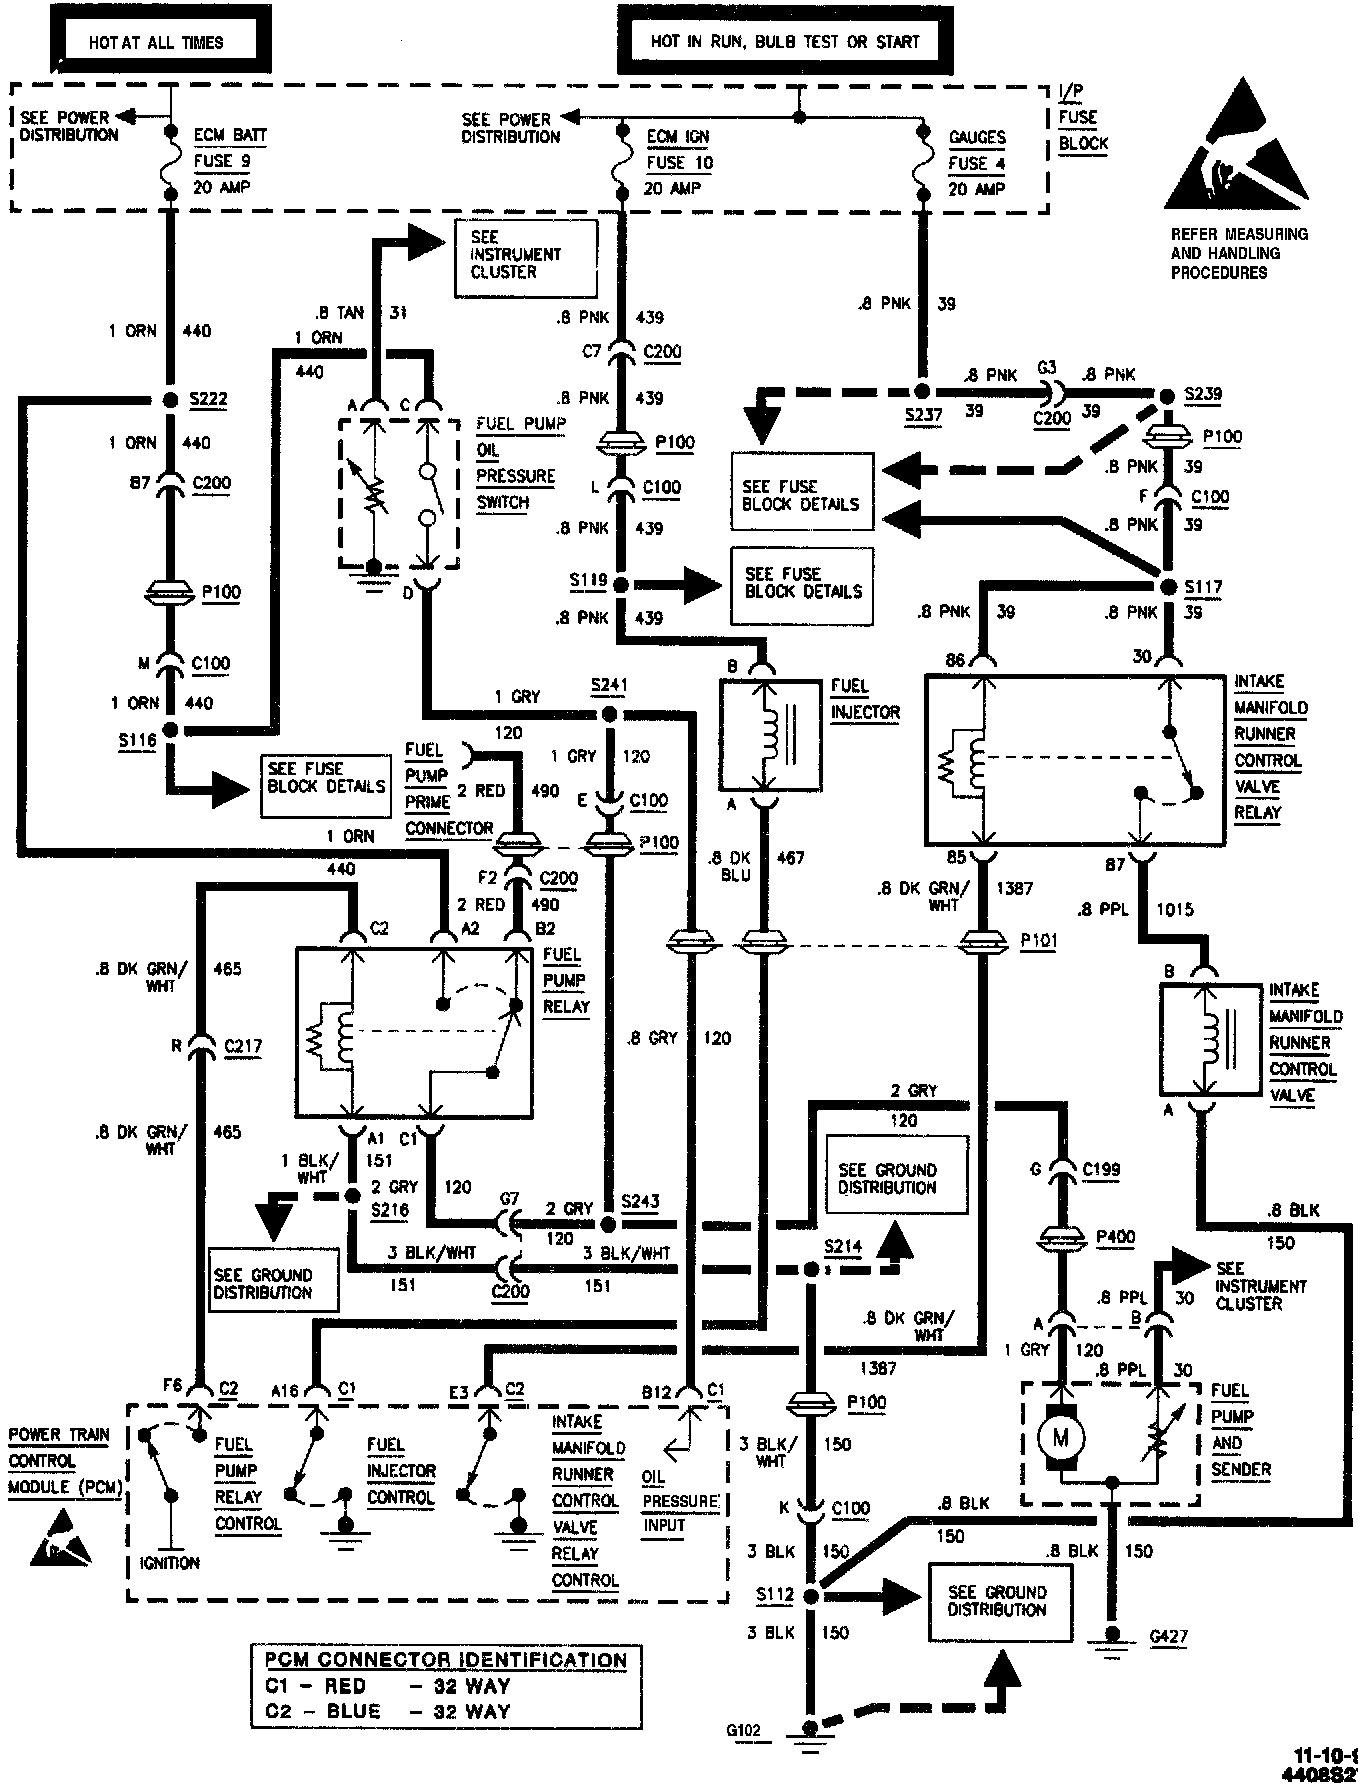 1989 chevrolet blazer wiring diagram wiring diagram 85 suburban wiring diagram 85 k5 blazer wiring diagram #13